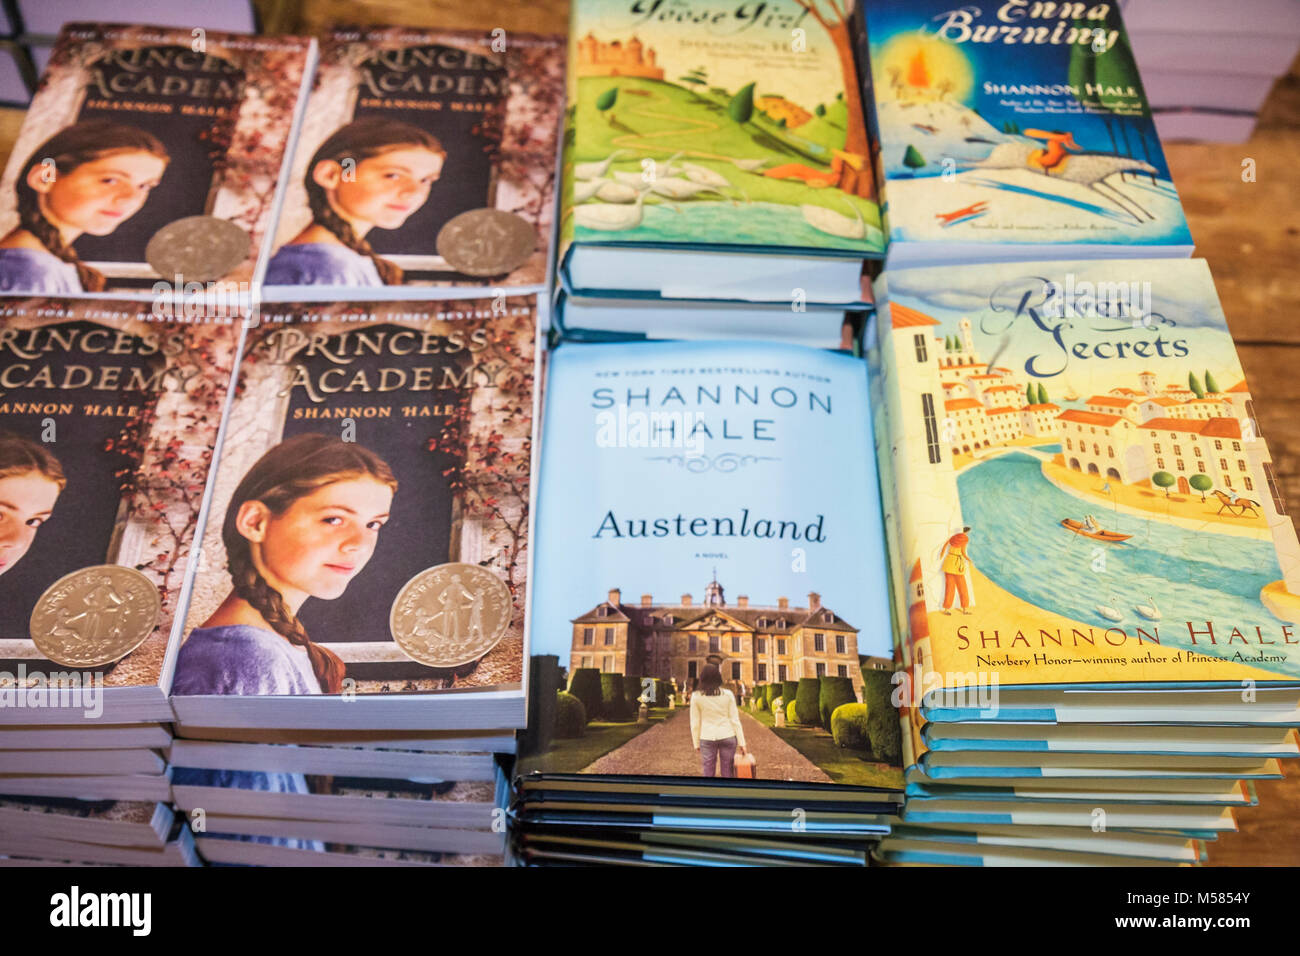 Coral Gables Books and Books Shannon Hale young adult fiction authors literature Austeland Princess Academy River - Stock Image